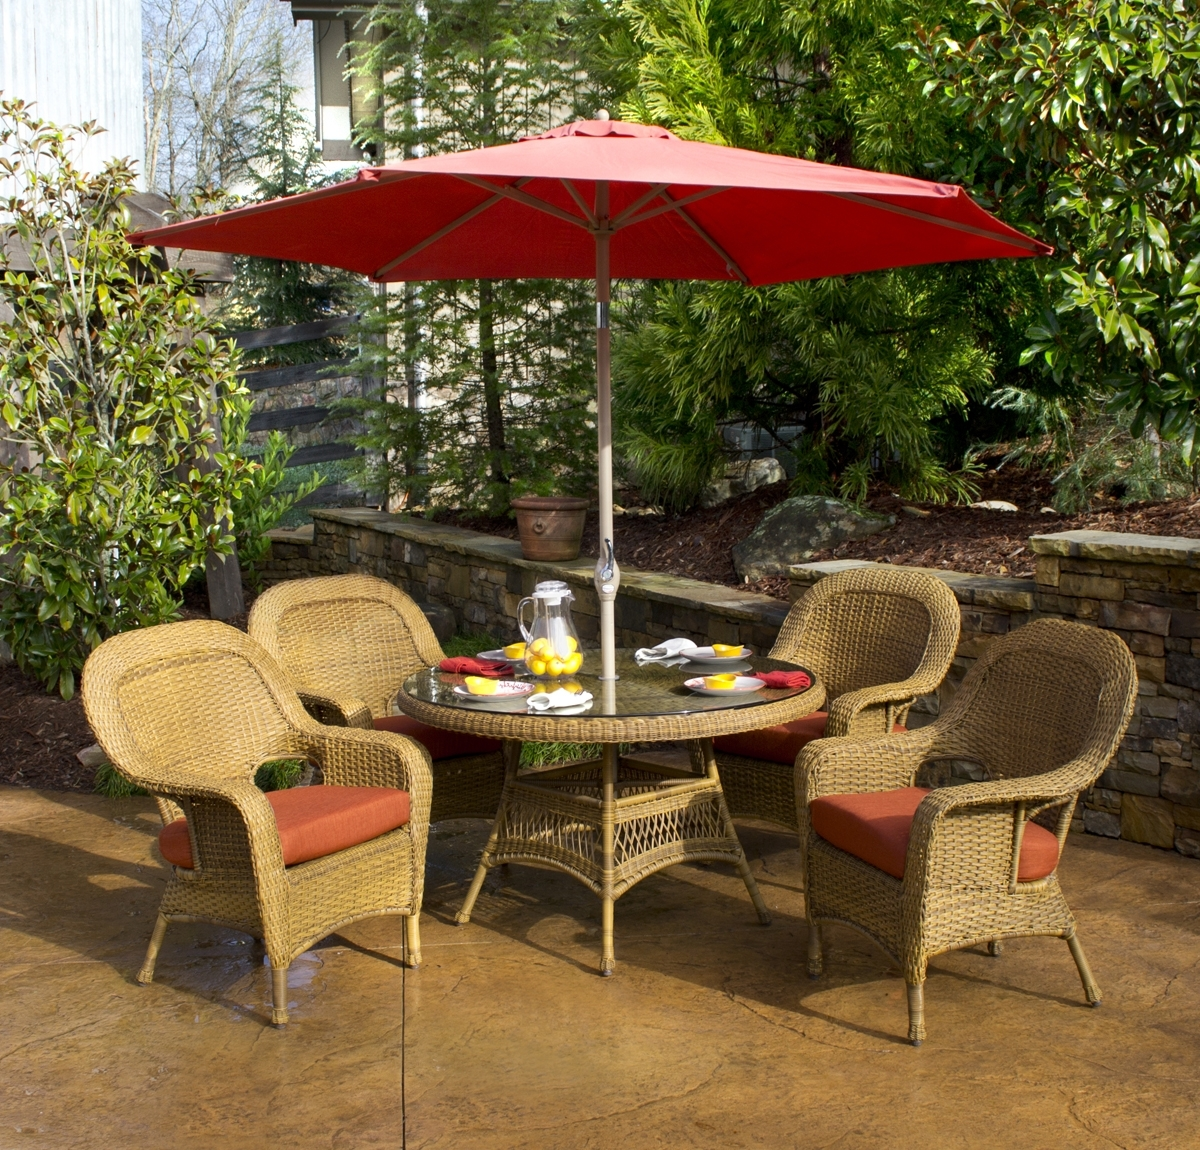 Classic Outdoor Dining Patio Ideas With White Painted Iron Red Within Fashionable Patio Dining Umbrellas (View 4 of 20)